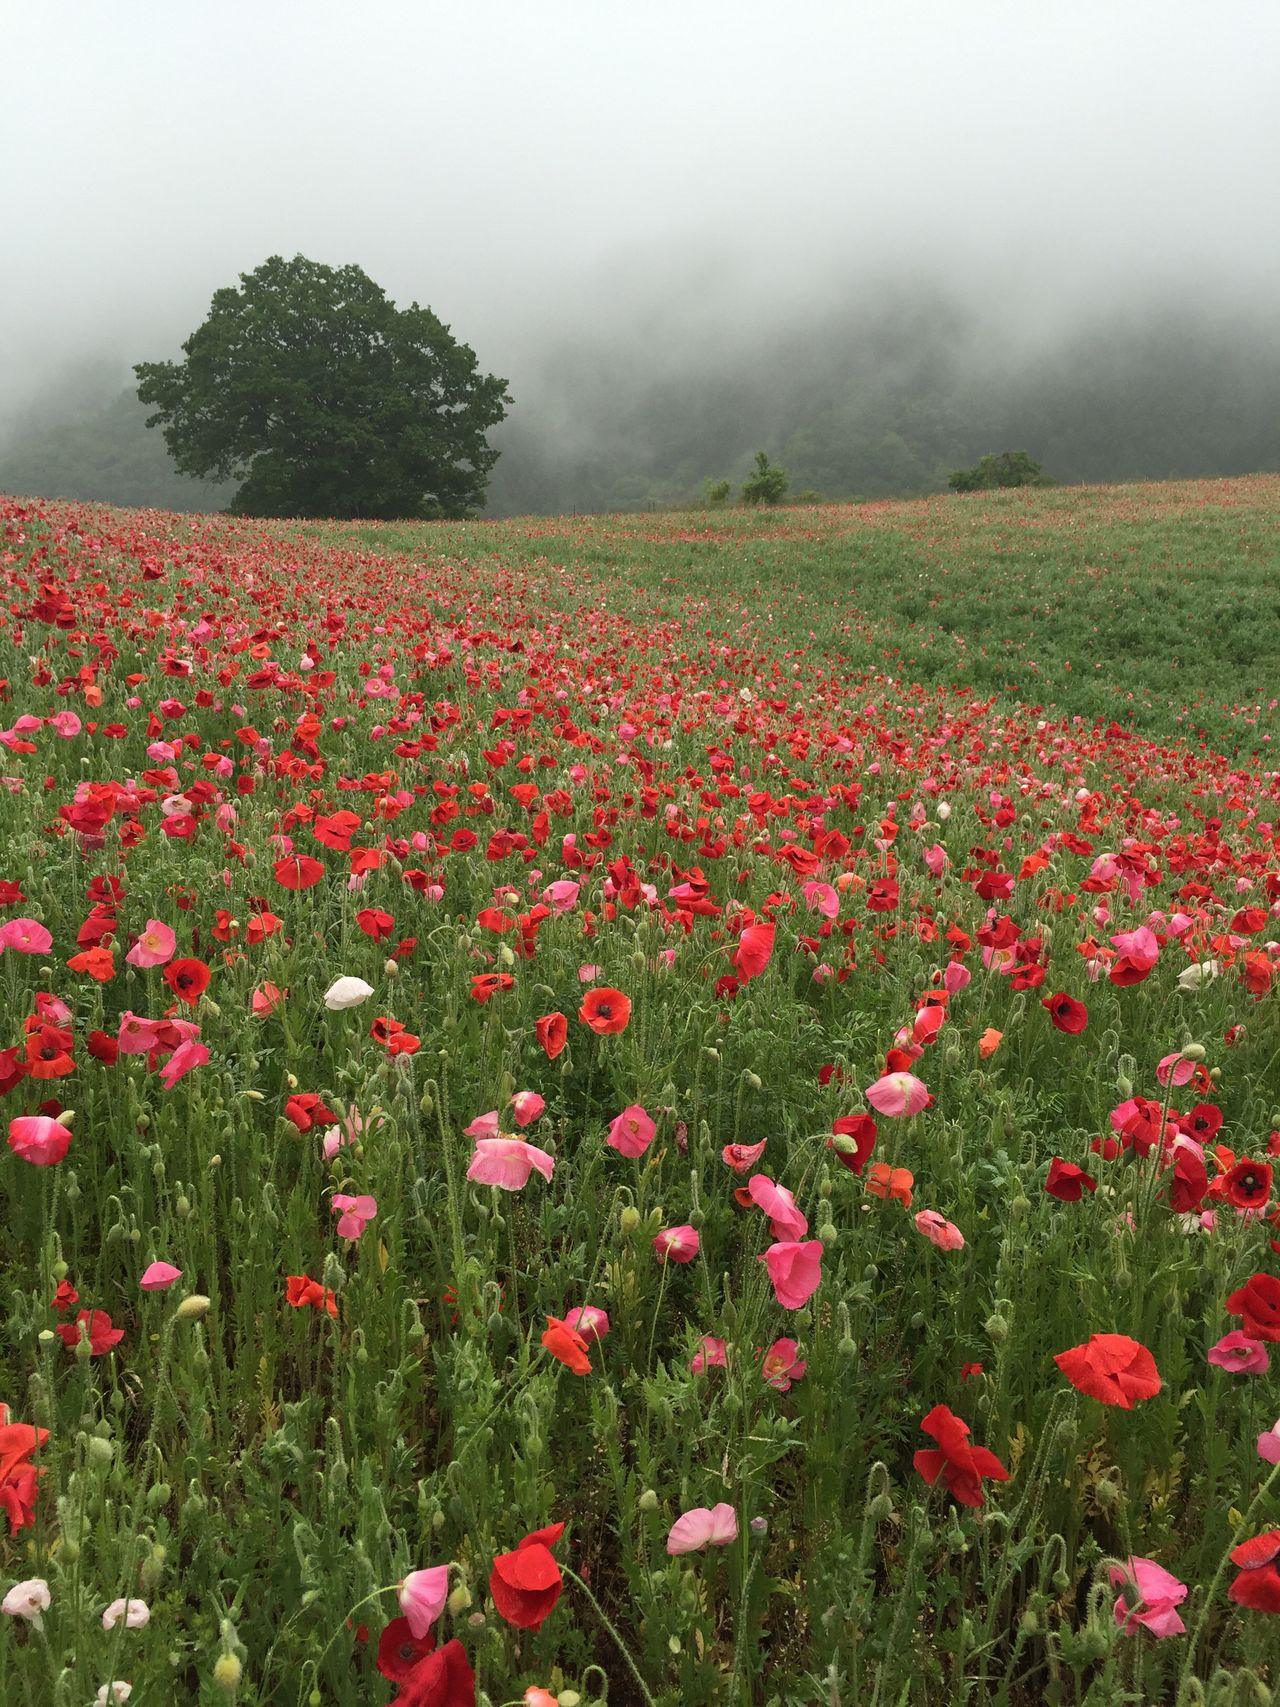 Field of poppies in the misty morning 🥀 Field Nature Growth Beauty In Nature Flower Fog Landscape Tranquility Plant Tranquil Scene Scenics Rural Scene Day Outdoors Red No People Grass Agriculture Poppy Freshness The Great Outdoors - 2017 EyeEm Awards Japan